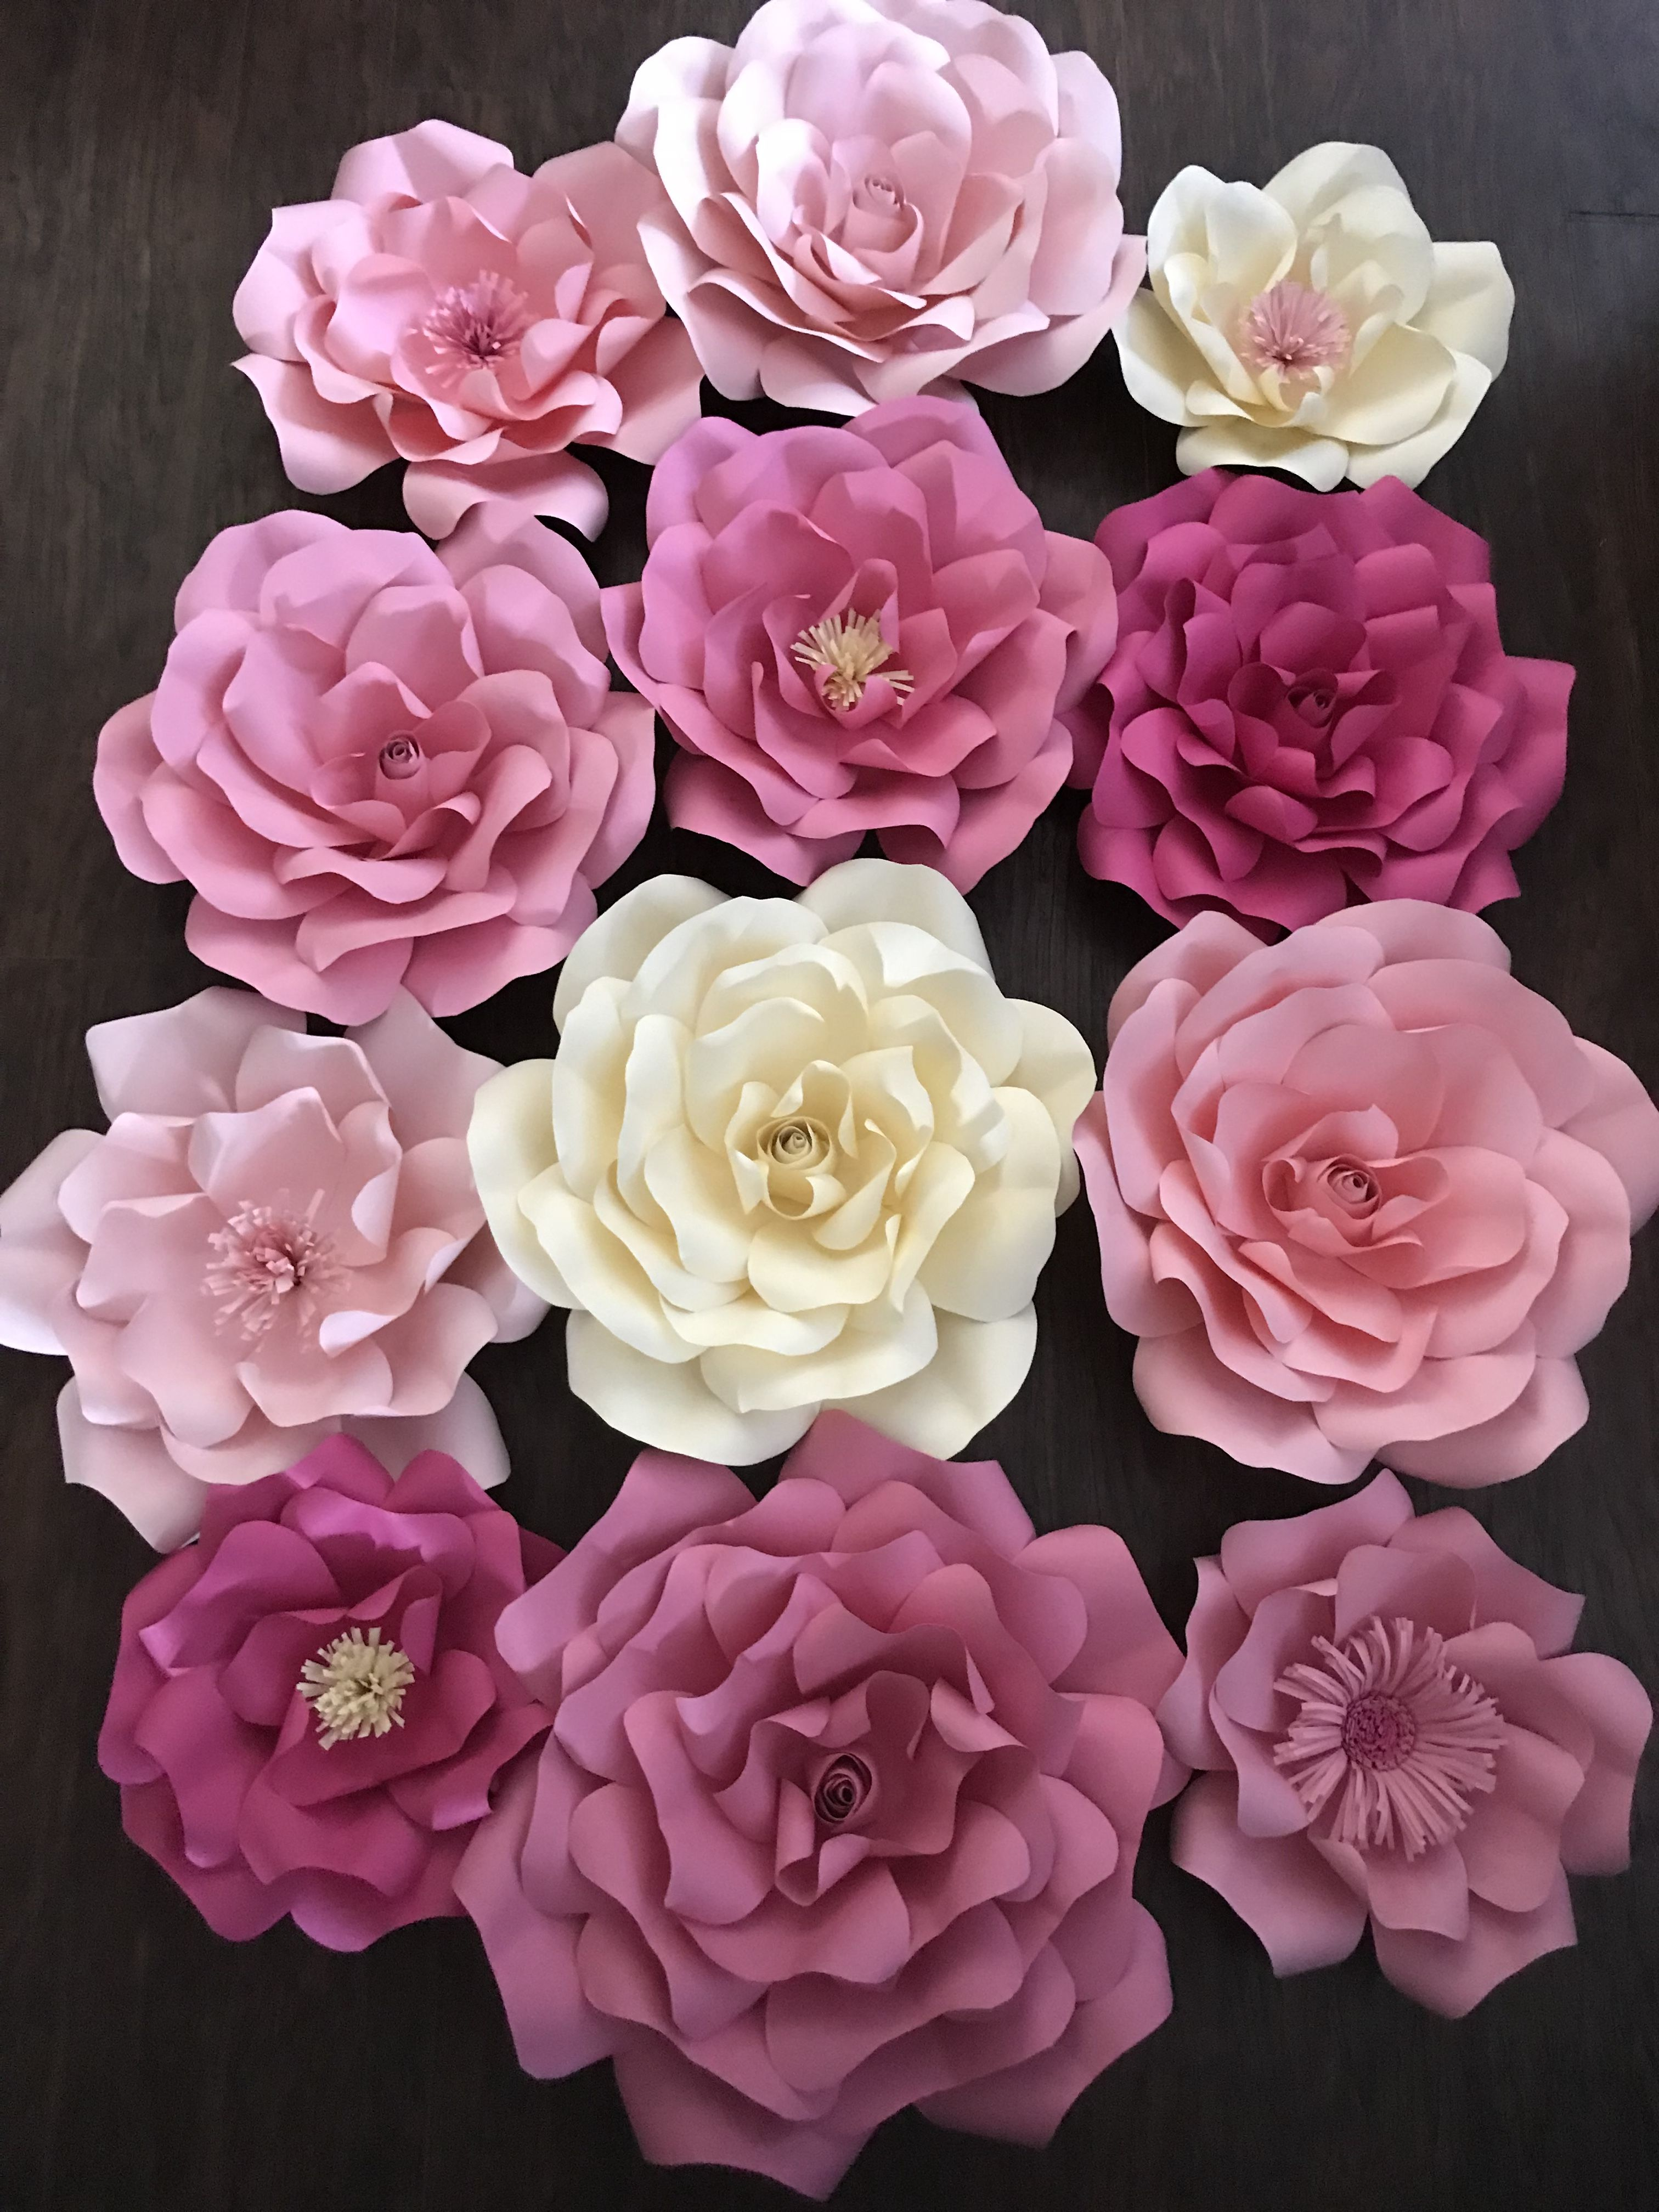 Paper flowers lyrics image collections flower decoration ideas evanescence paper flowers images flower decoration ideas paper flowers evanescence image collections flower decoration ideas dorable mightylinksfo